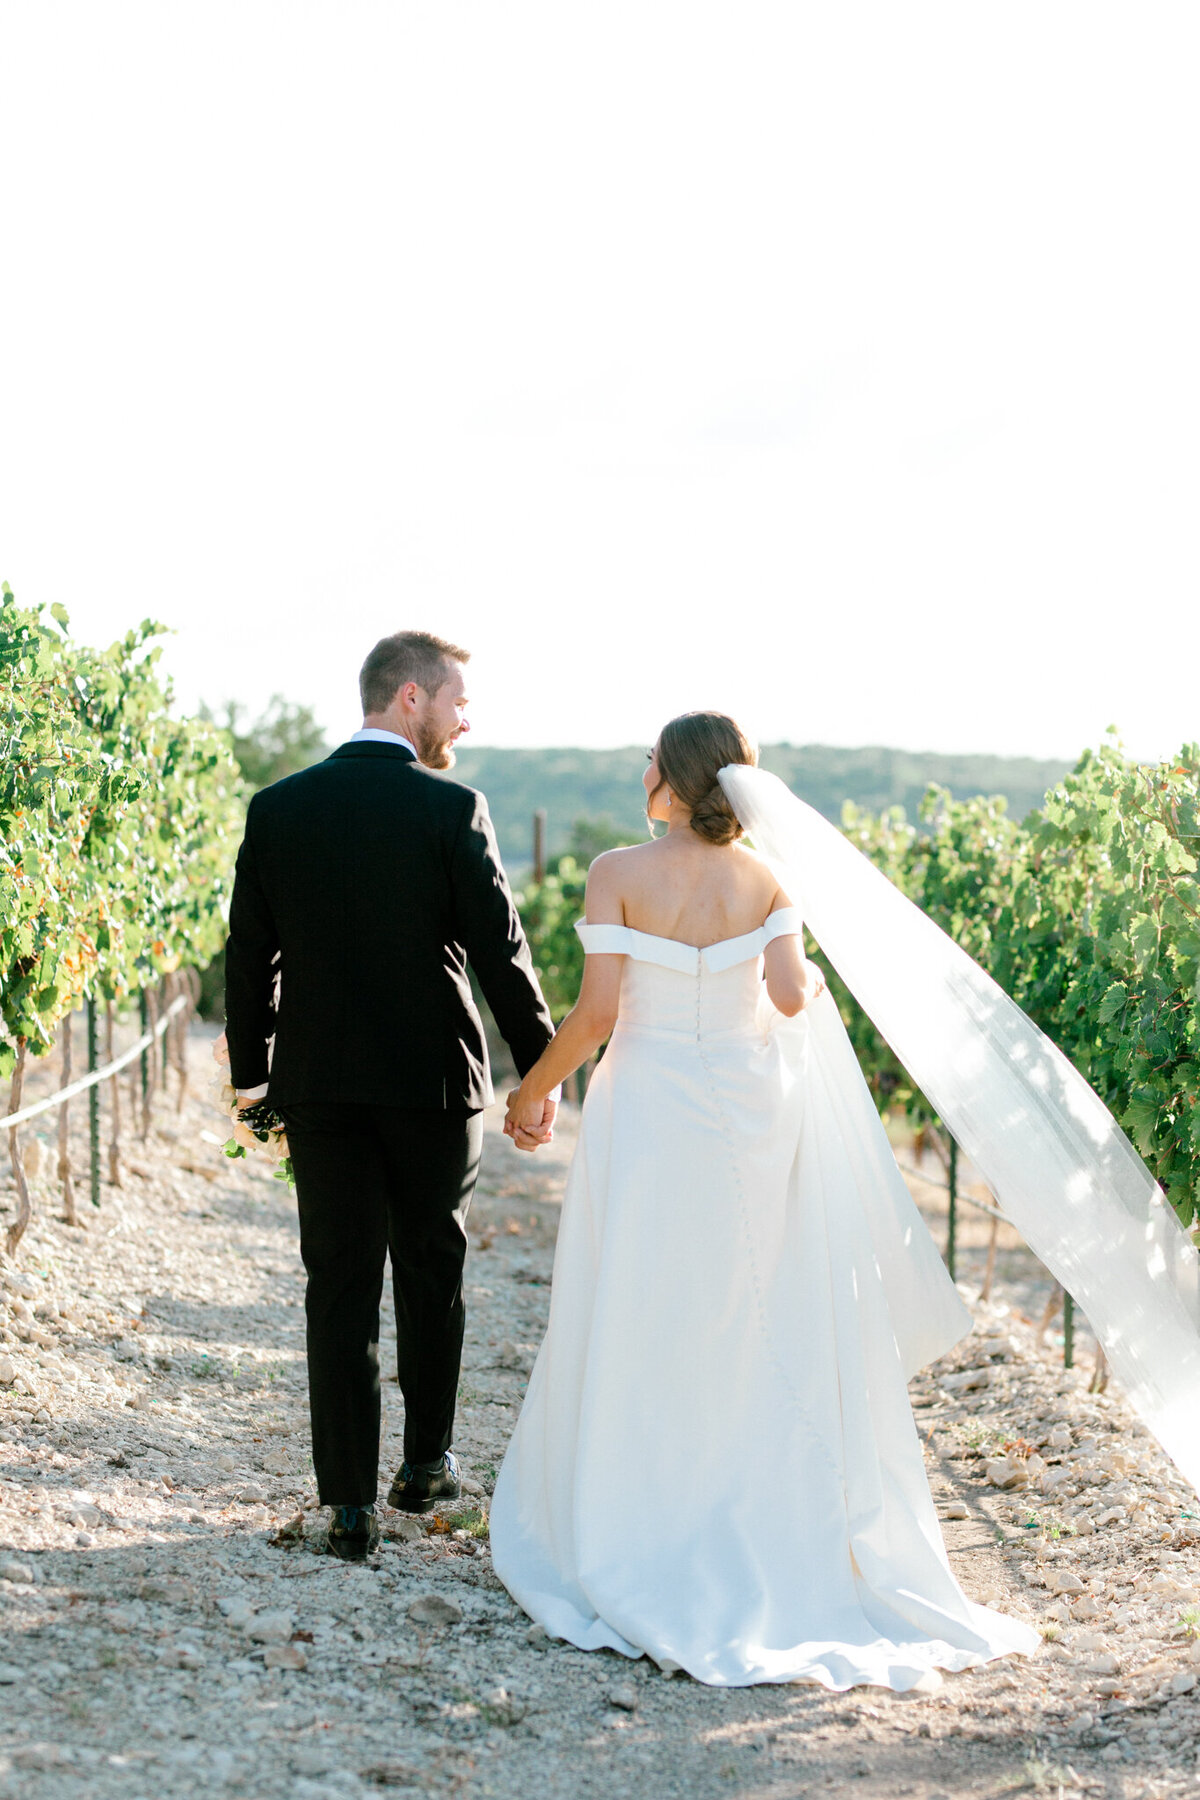 Lexi Broughton & Garrett Greer Wedding at Dove Ridge Vineyards | Sami Kathryn Photography | Dallas Wedding Photography-134